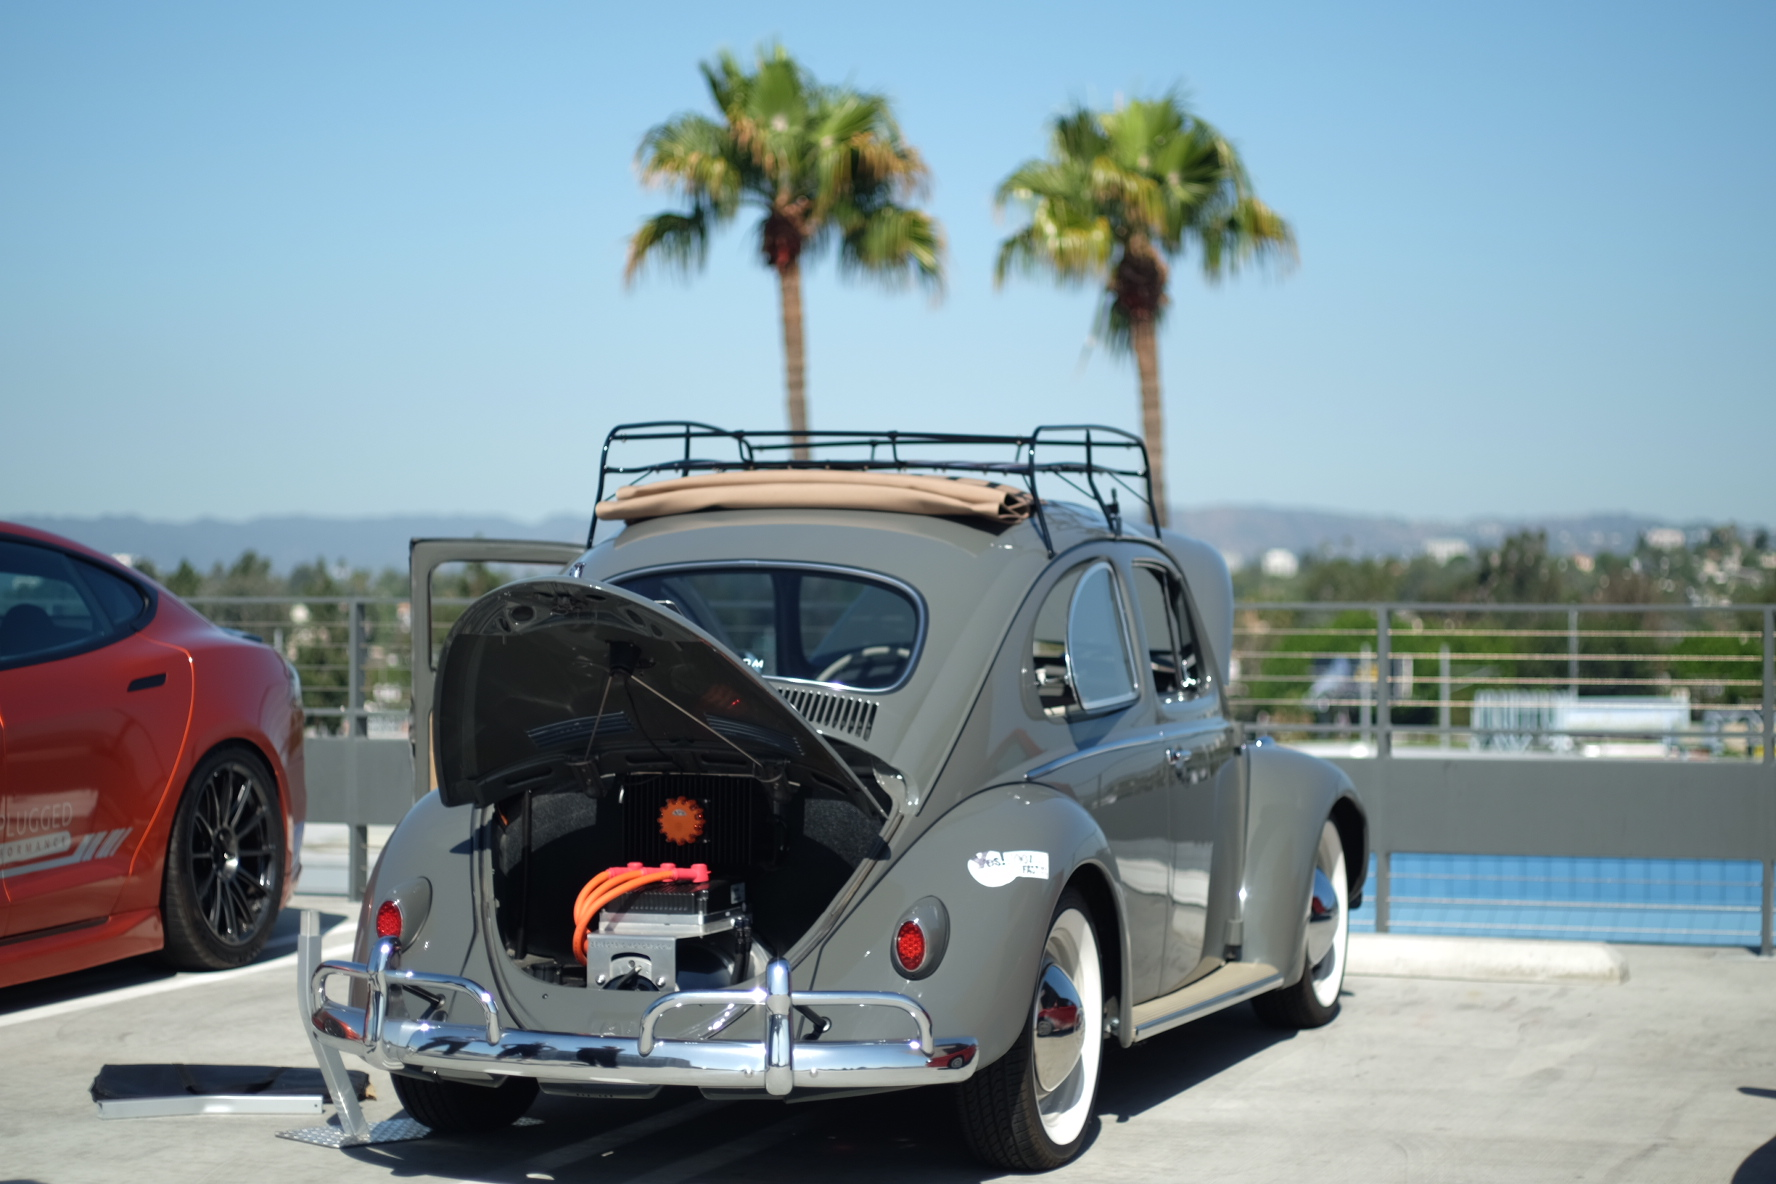 David B. Zelectric Motors 1958 Volkswagen Bug Rag Rop - EV Conversion